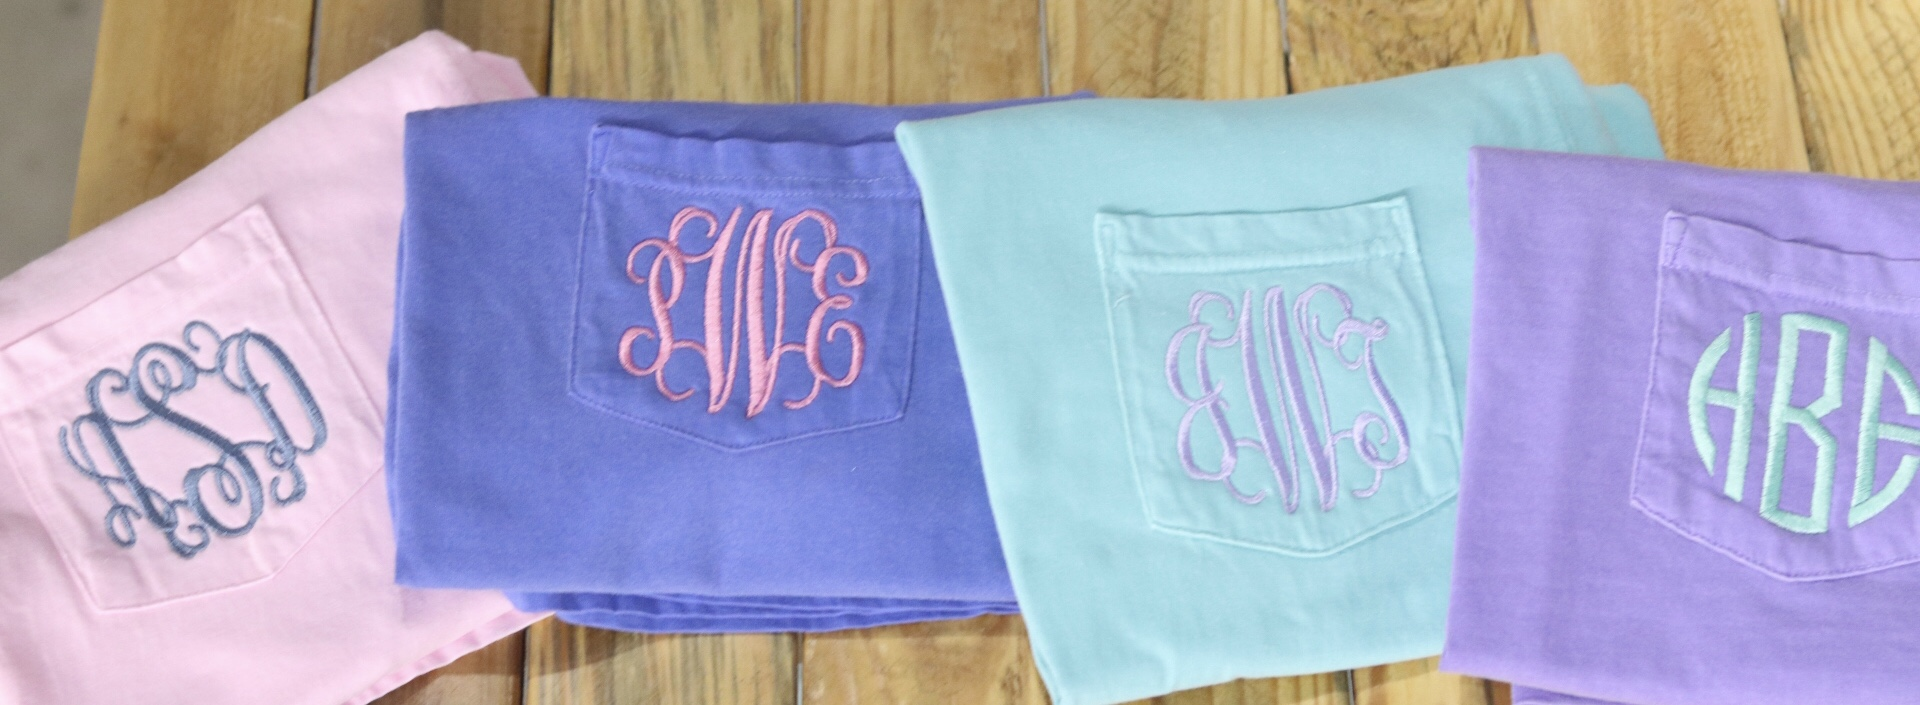 Discover monogrammed tees and shirts for women - hats, swimwear, bags and accessories.